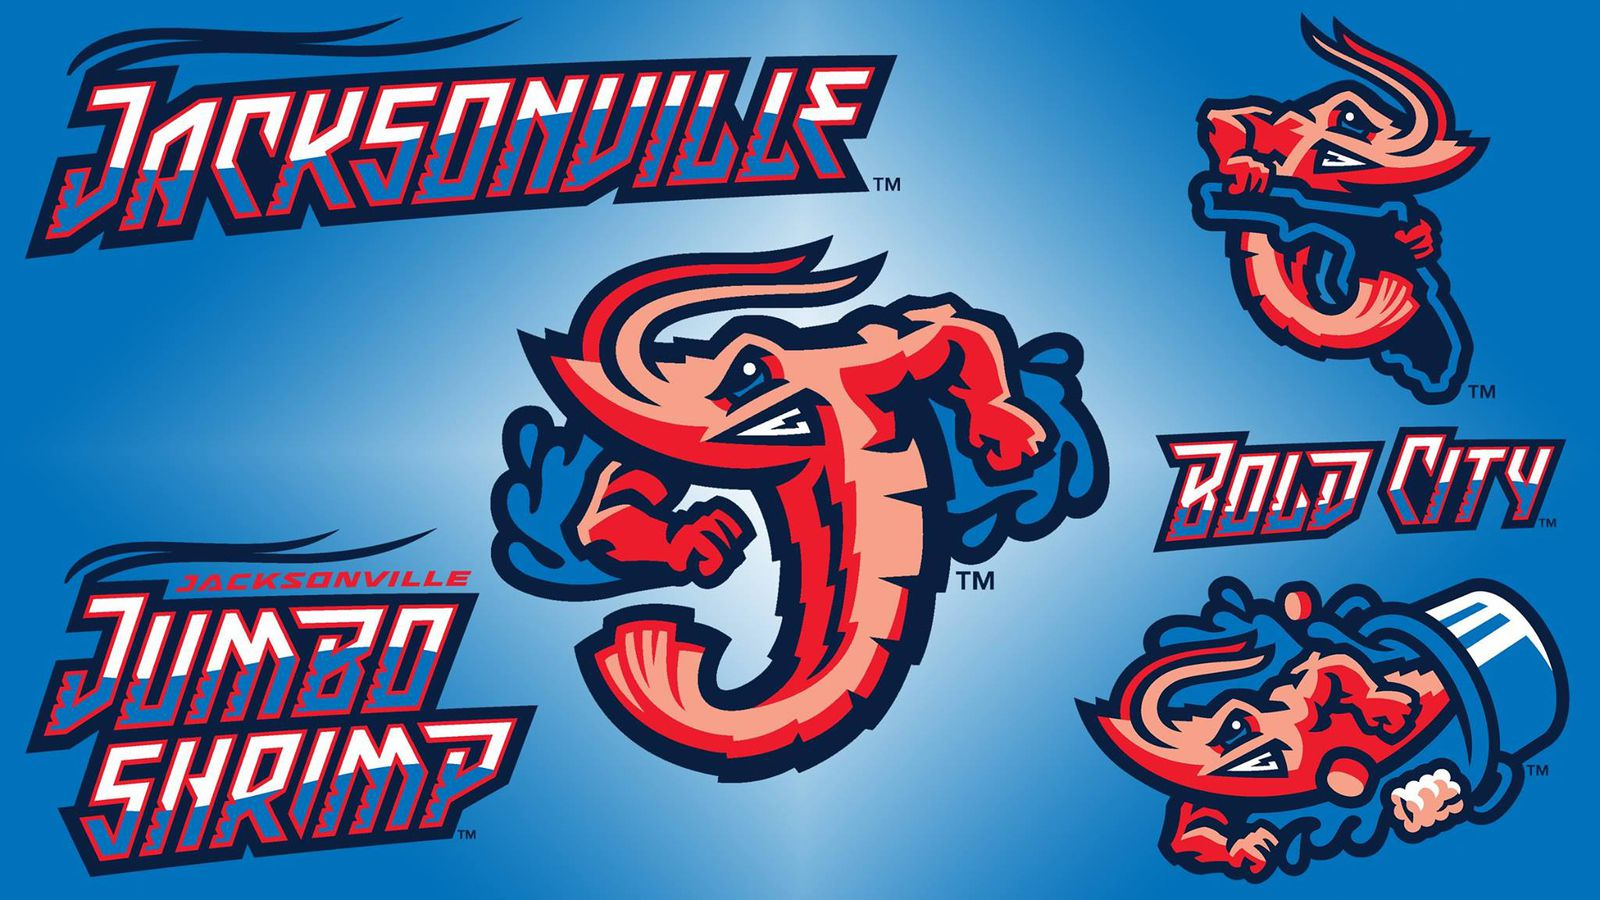 The Jacksonville Jumbo Shrimp Is An Actual Baseball Team